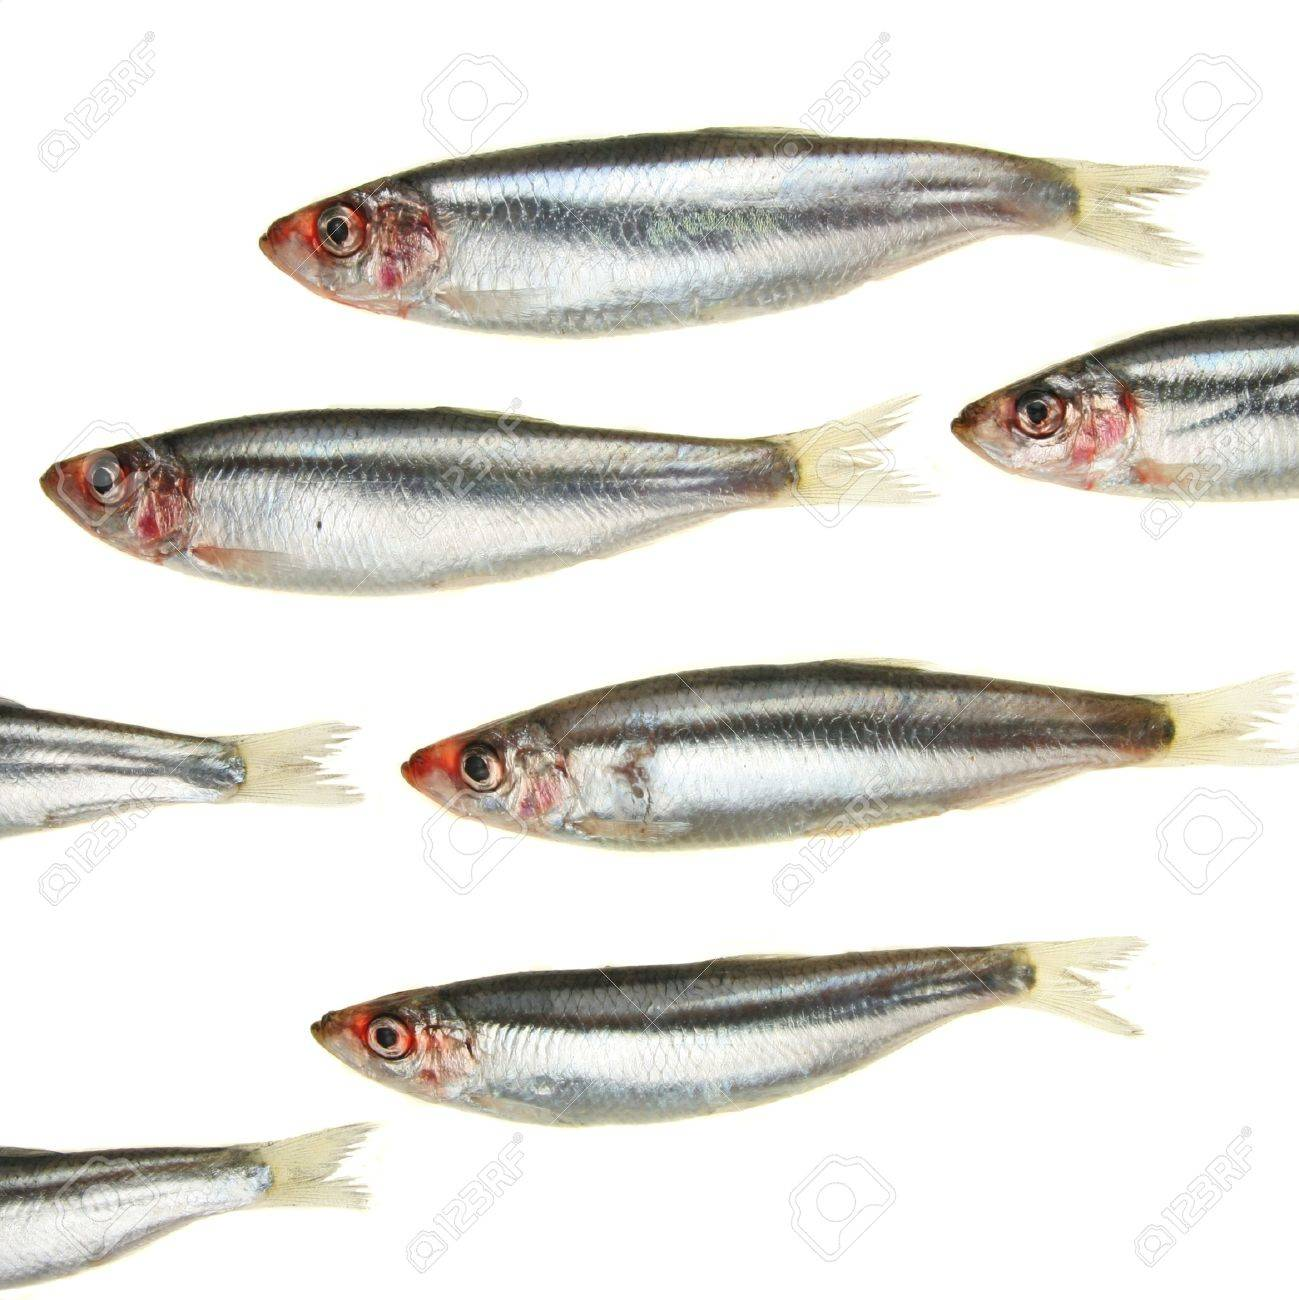 A group of sprat fish appear to swim in and out of the frame Standard-Bild - 4370568